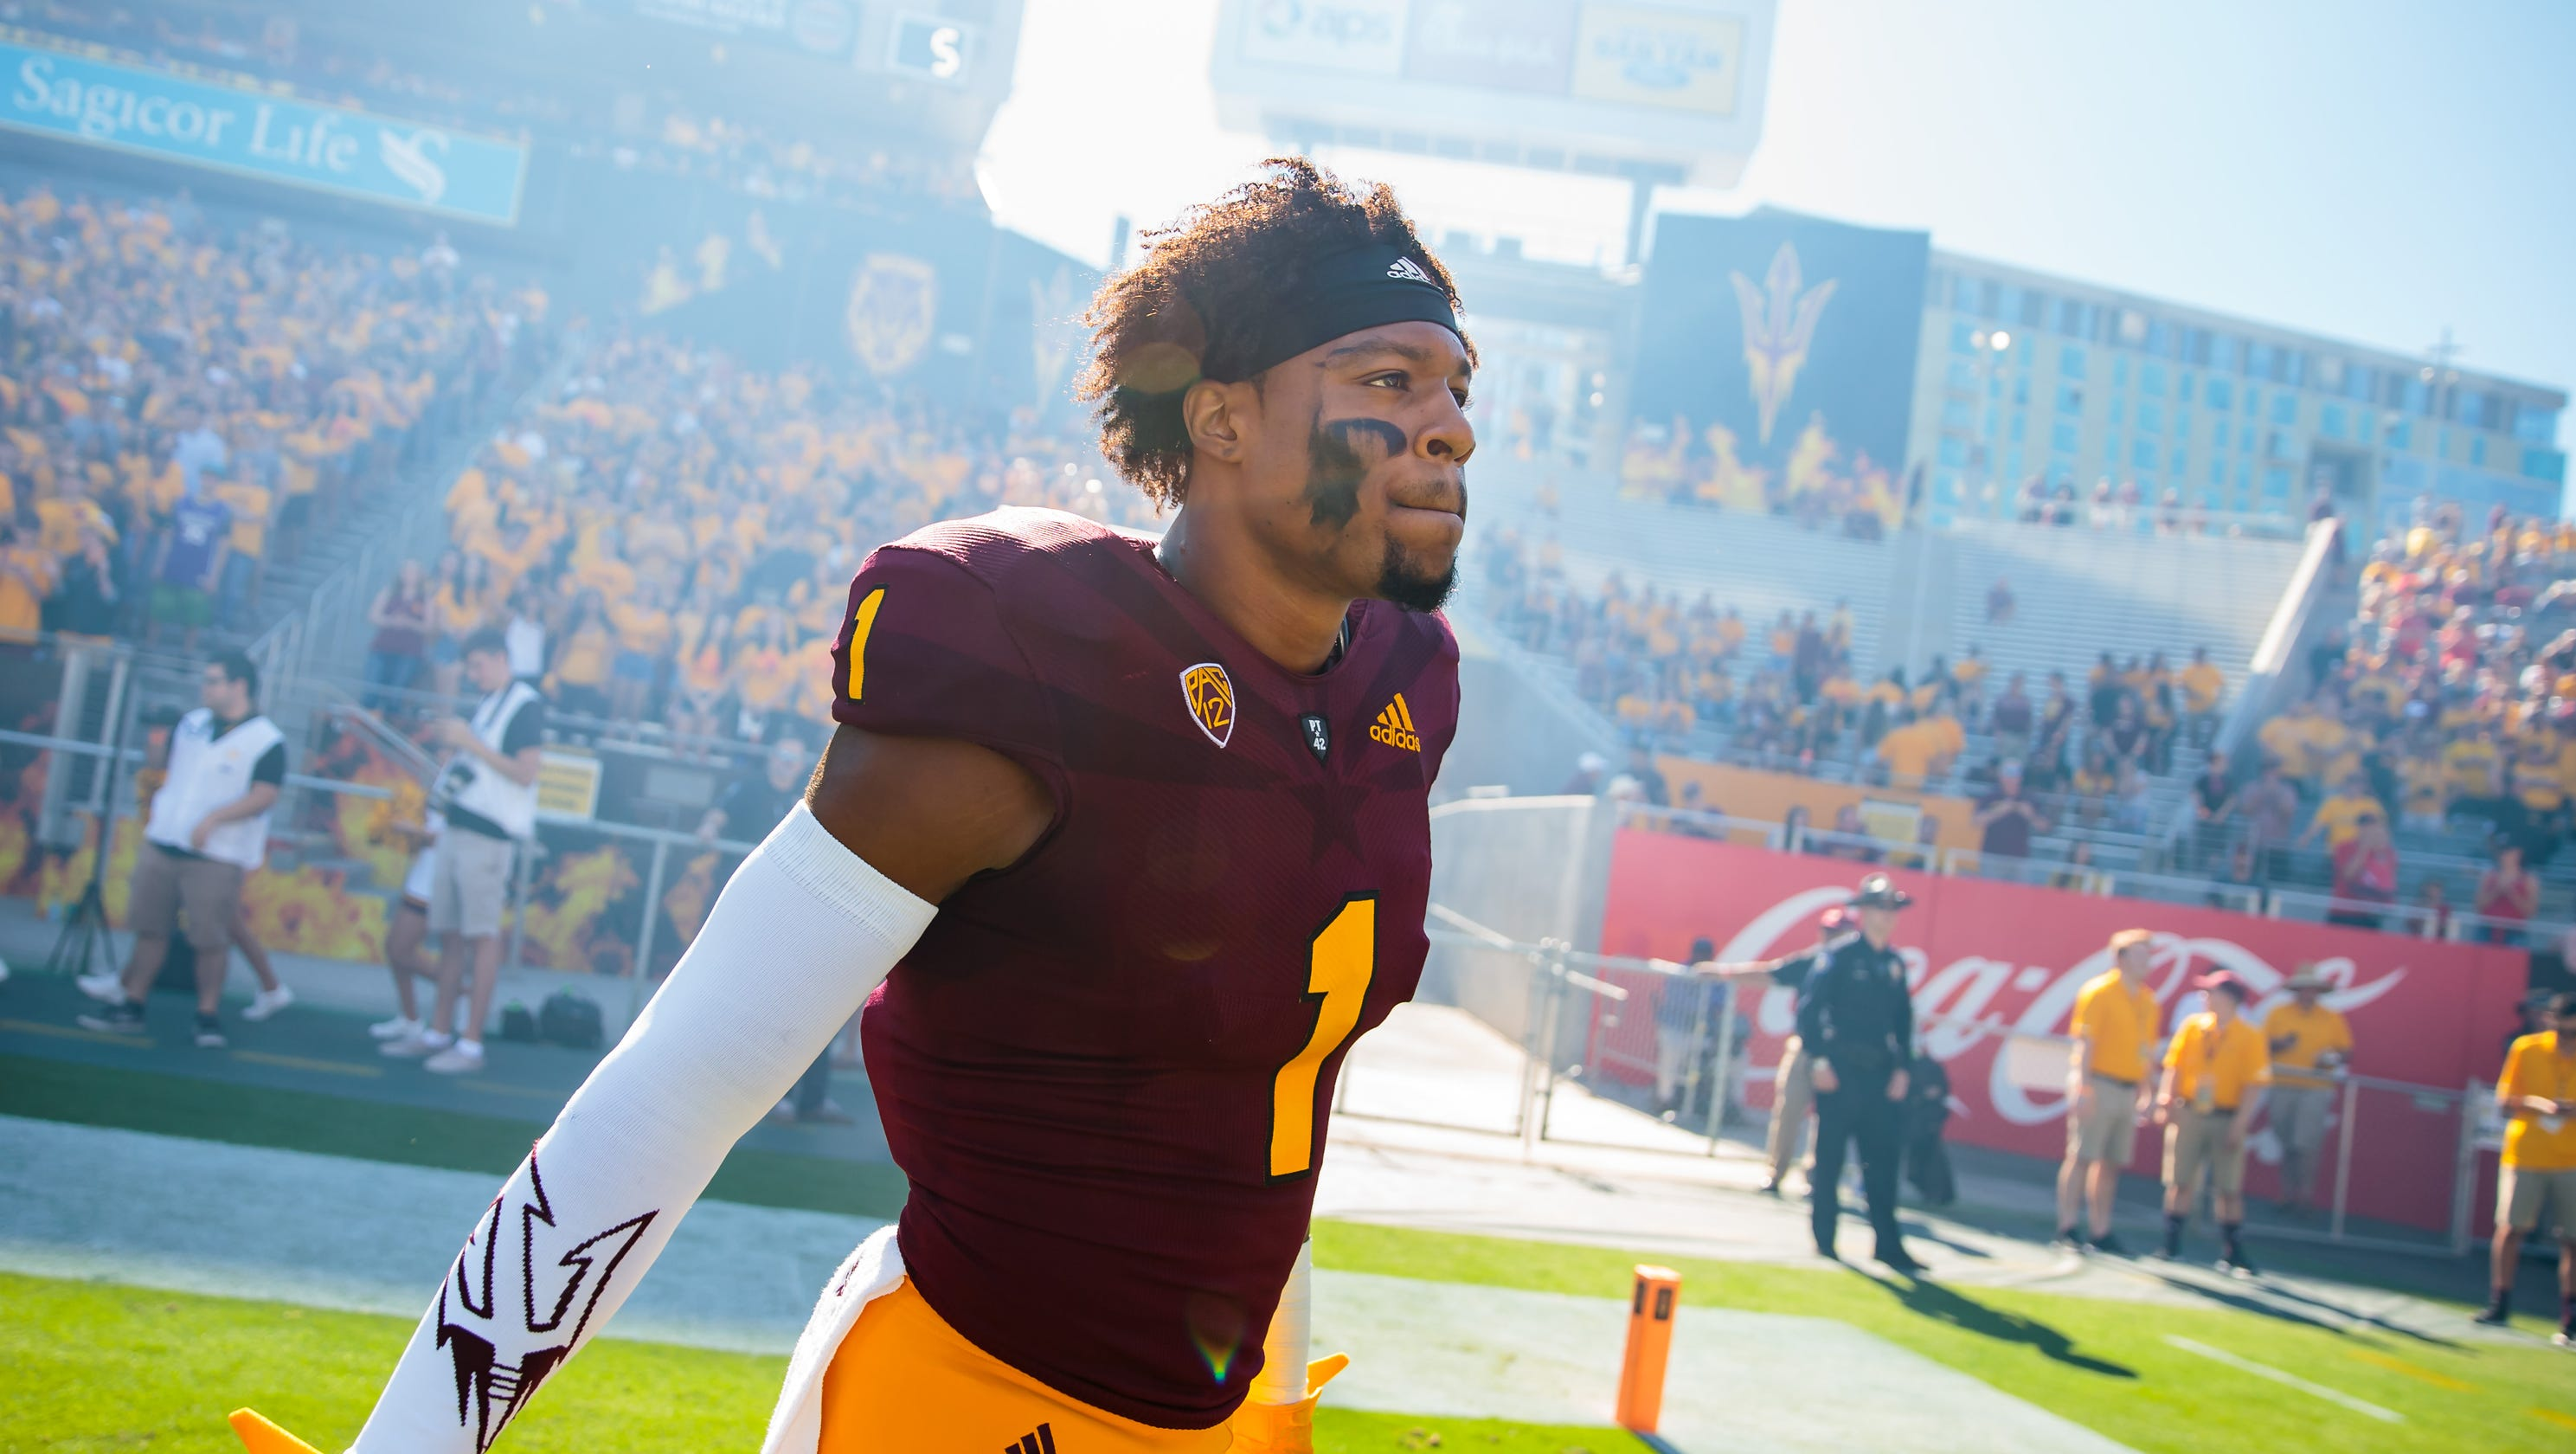 39ccc220326 NFL mock draft: ASU football's N'Keal Harry 2019 NFL draft projections